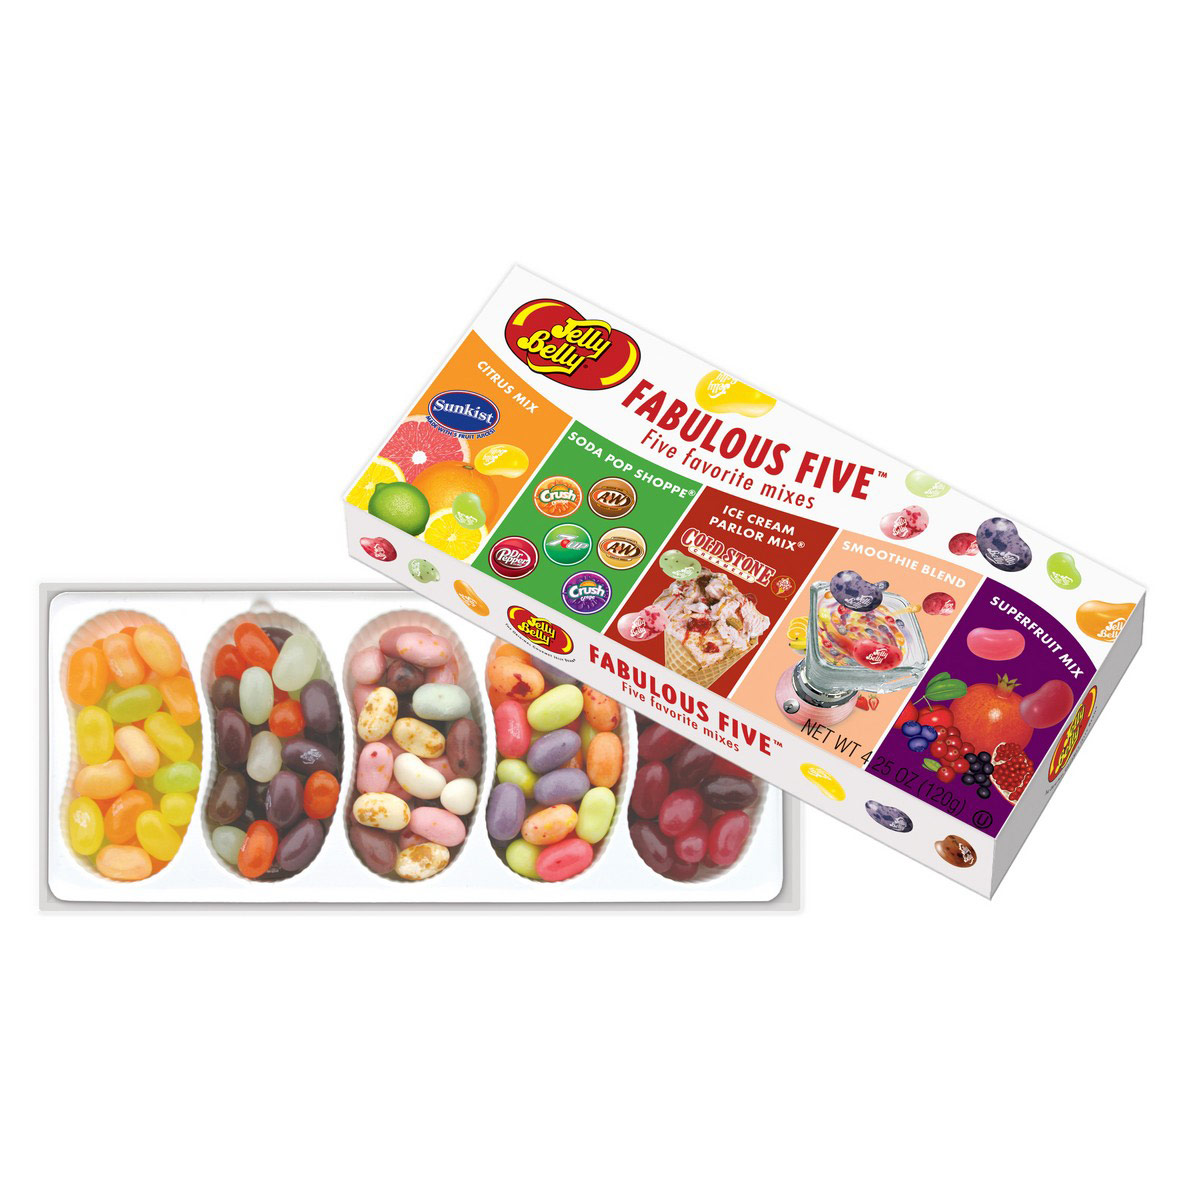 Fabulous Five<sup>&reg;</sup> Jelly Bean Gift Box